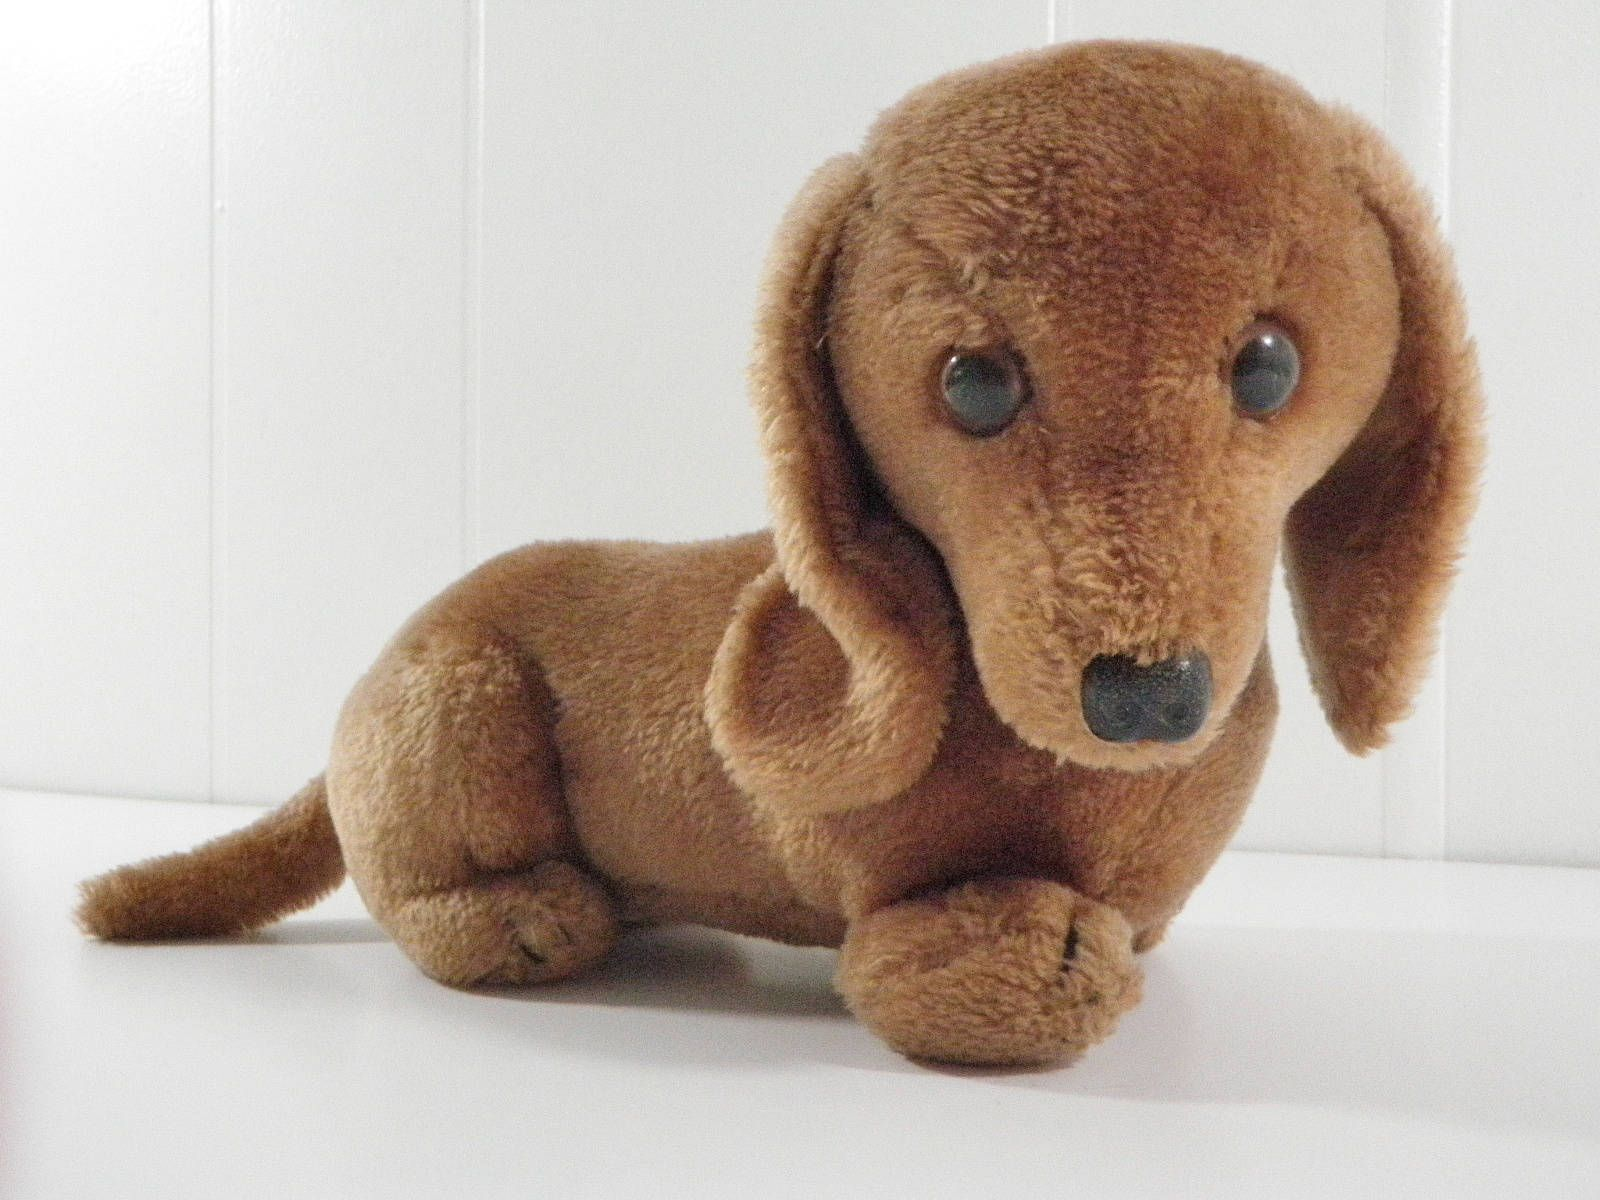 Vintage 1976 Stuffed Dachshund Wiener Dog Dakin Plush Animal Toy